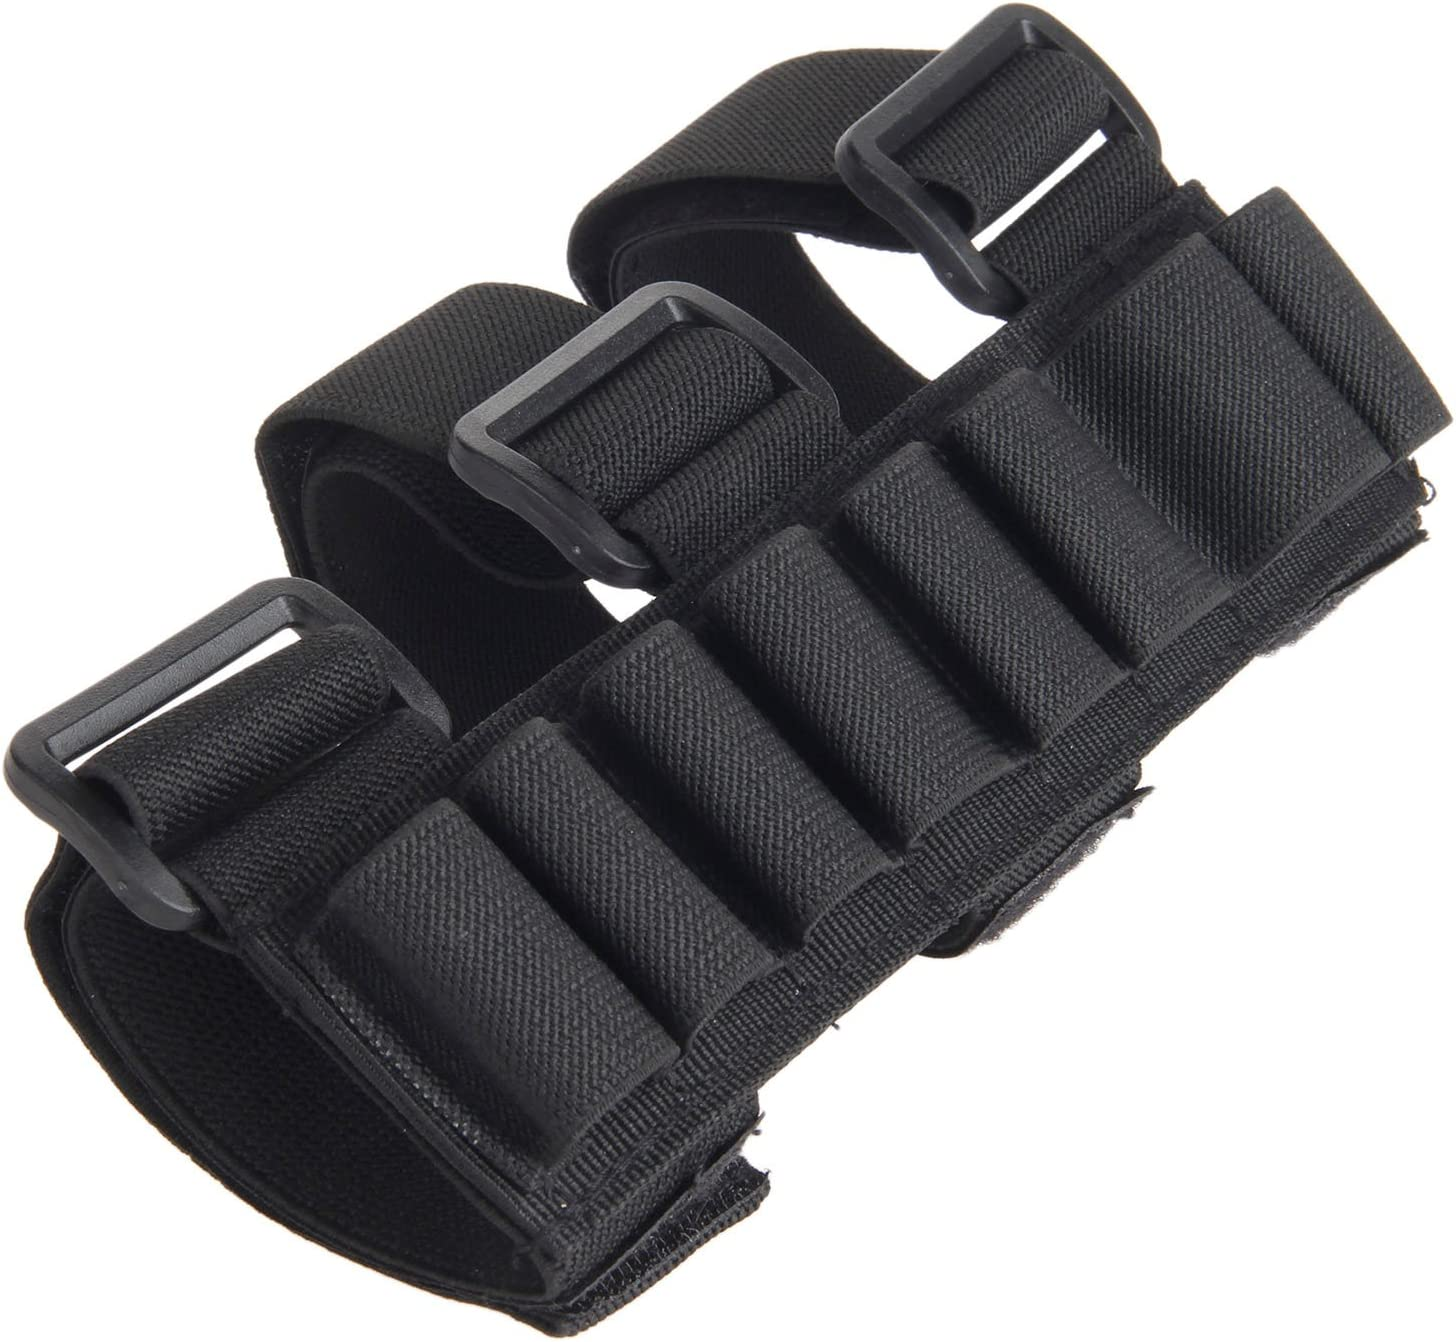 8-Round Arm Rifle Bullet Pouch Airsoft Hunting Accessory Bag Shotgun Ammo Holder